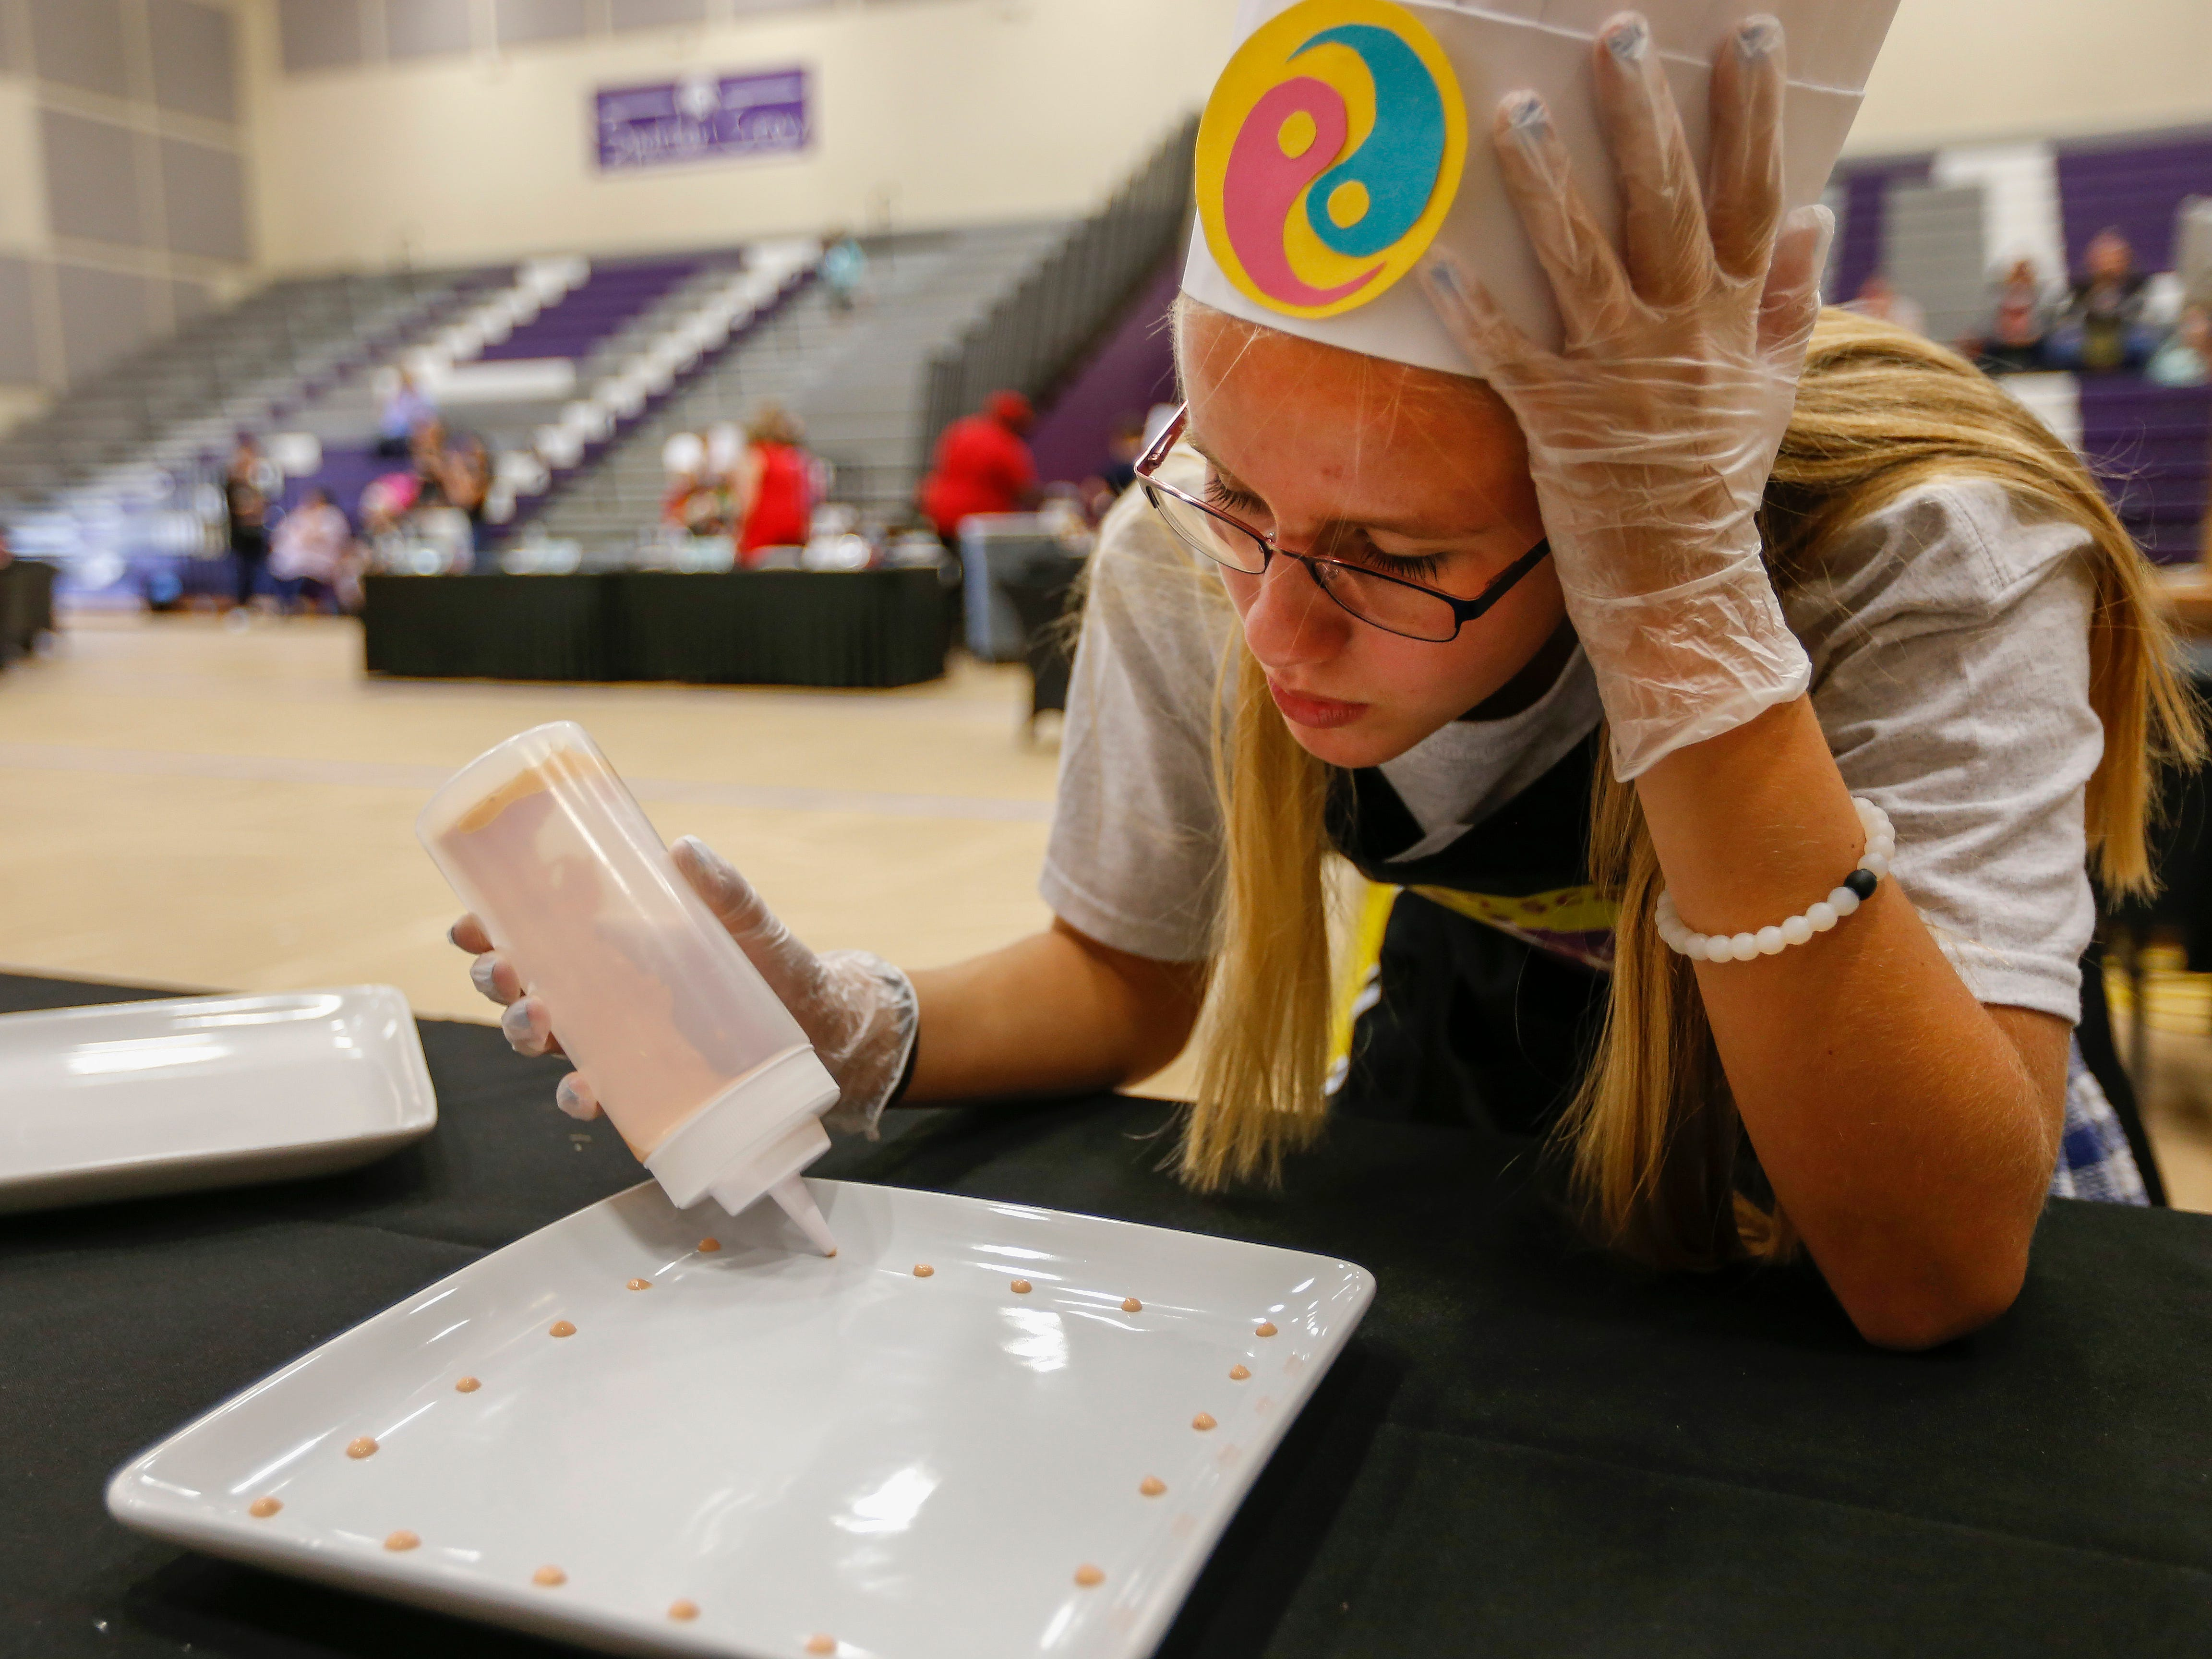 Samantha McCormick, a student at Hickory Hills Middle School, decorates her team's plate during the third annual Junior Chef Competition at Hickory Hills Middle School on Saturday, Sept. 29, 2018.